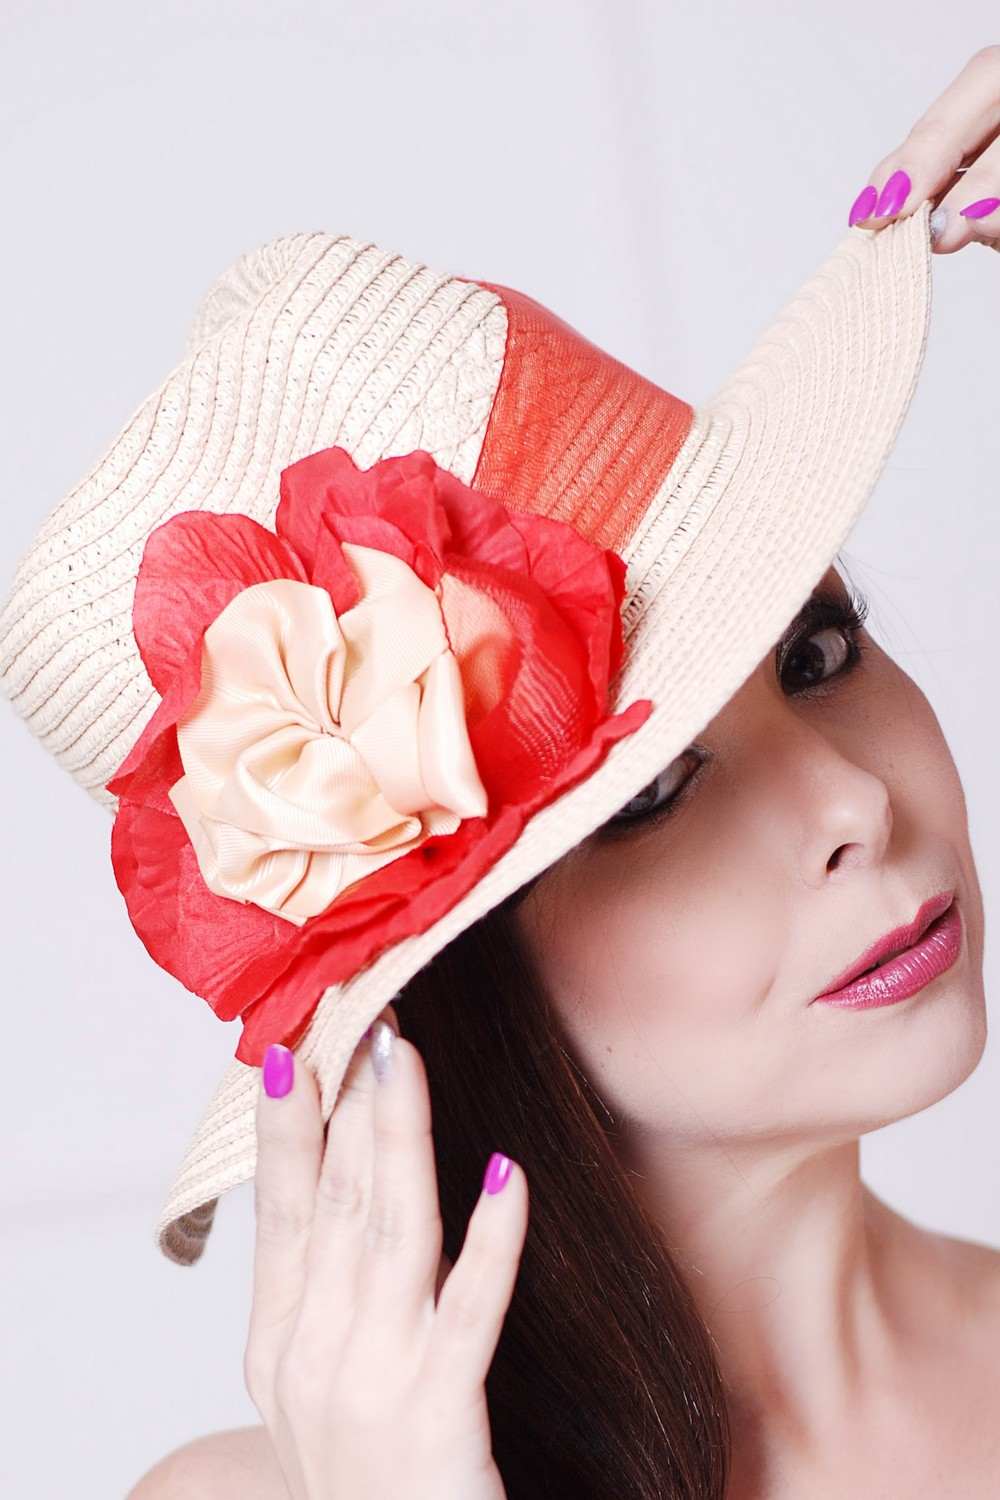 Buy Beach fedora hat, Summer women's straw hat in retro style, Unique stylish hat for the holiday